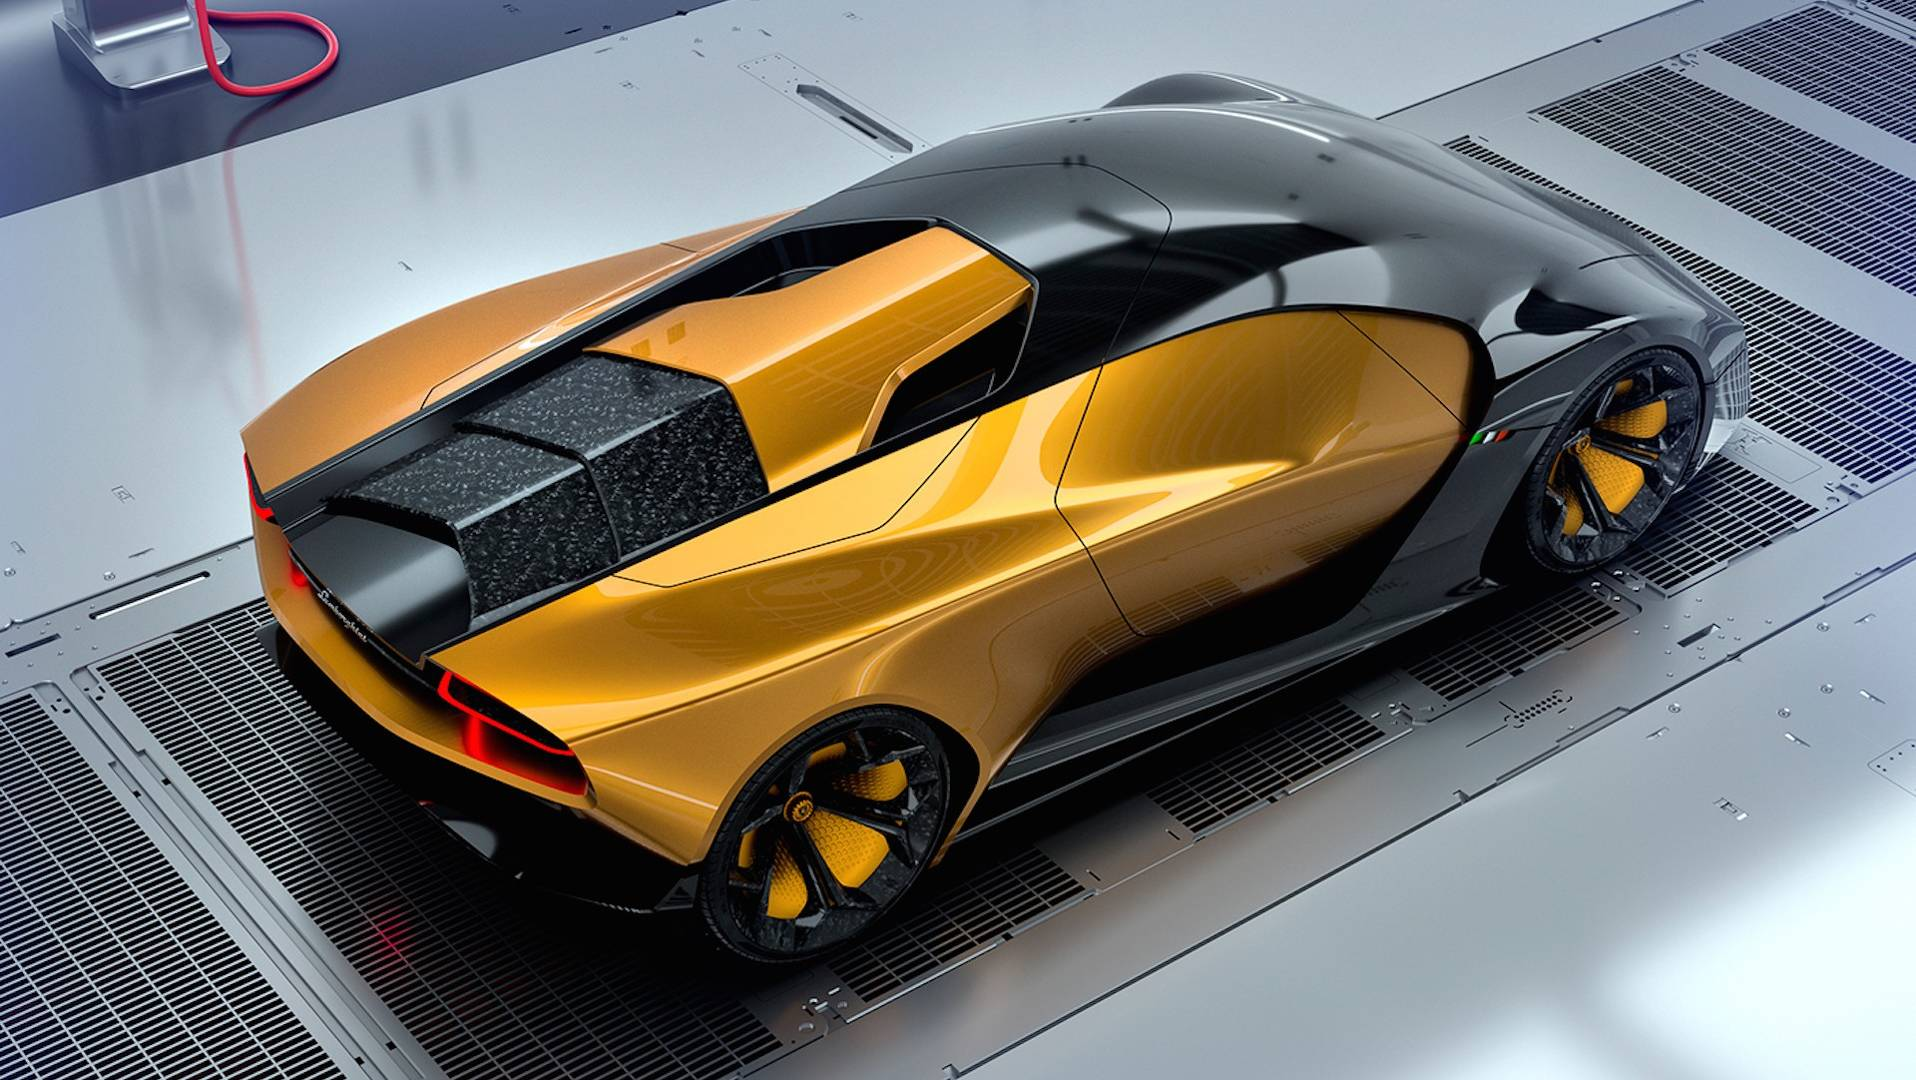 Lamborghini Rendering Imagines The Gold Standard Of Concept Cars